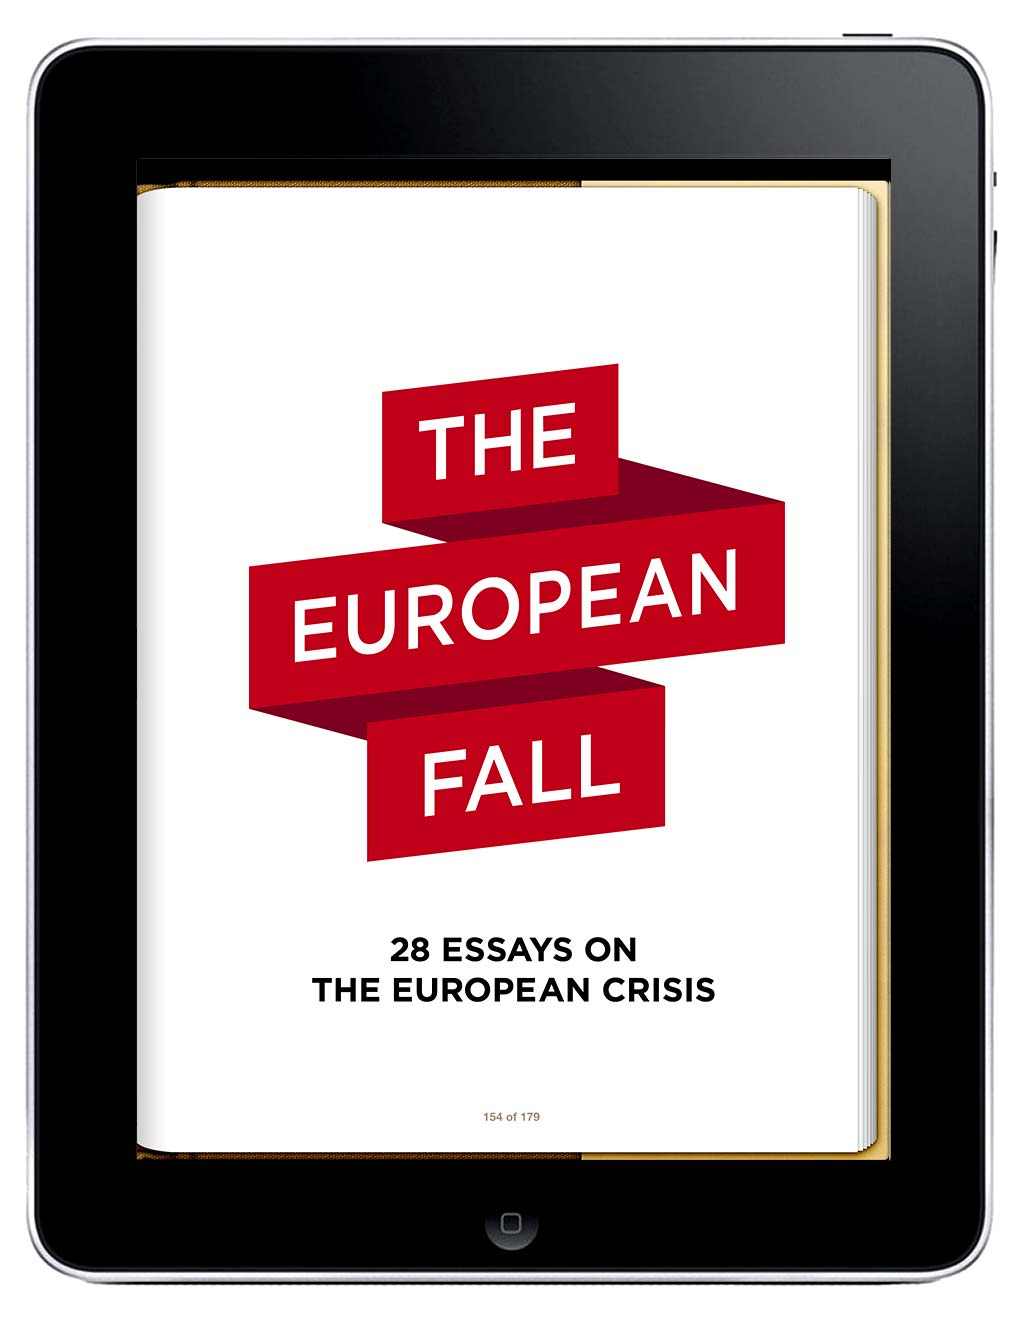 Politiken: The European Fall – e-books